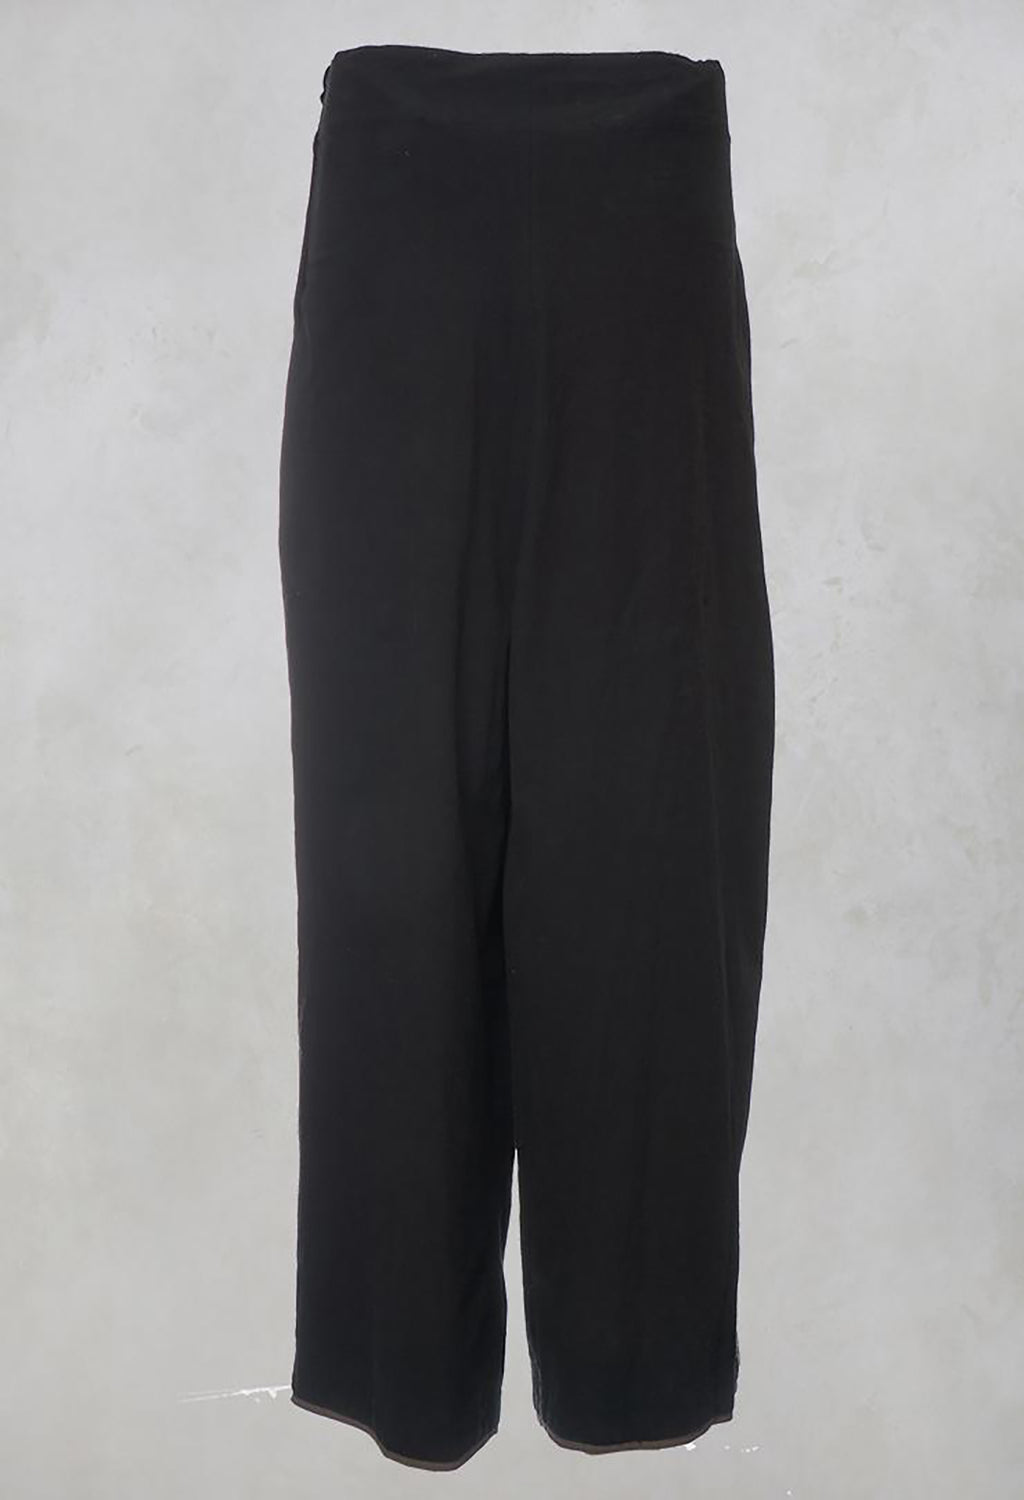 Black Trousers with Pleats and Front Tie